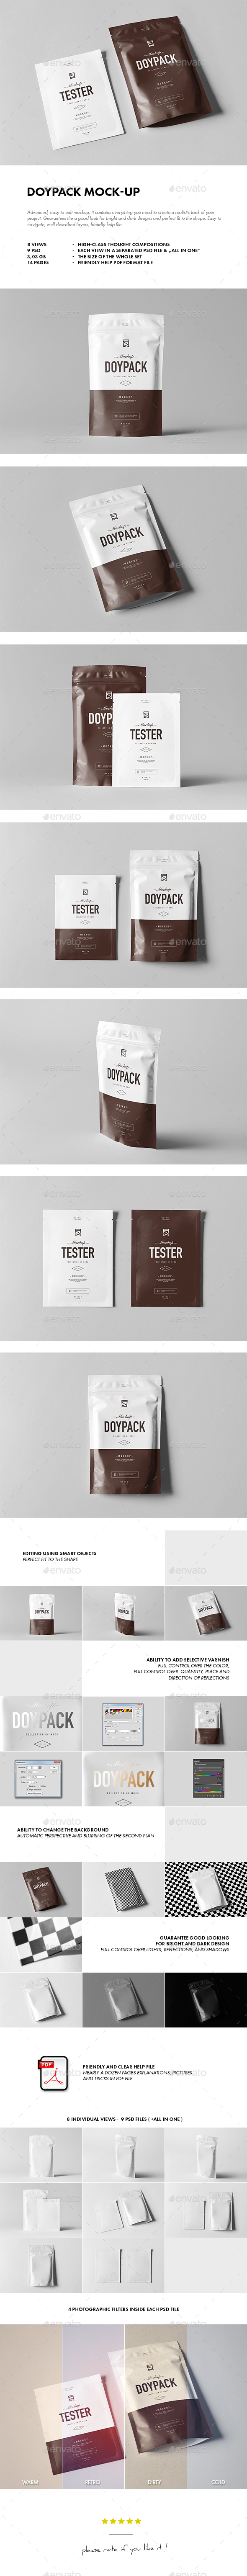 Doypack Mock-up - Miscellaneous Packaging